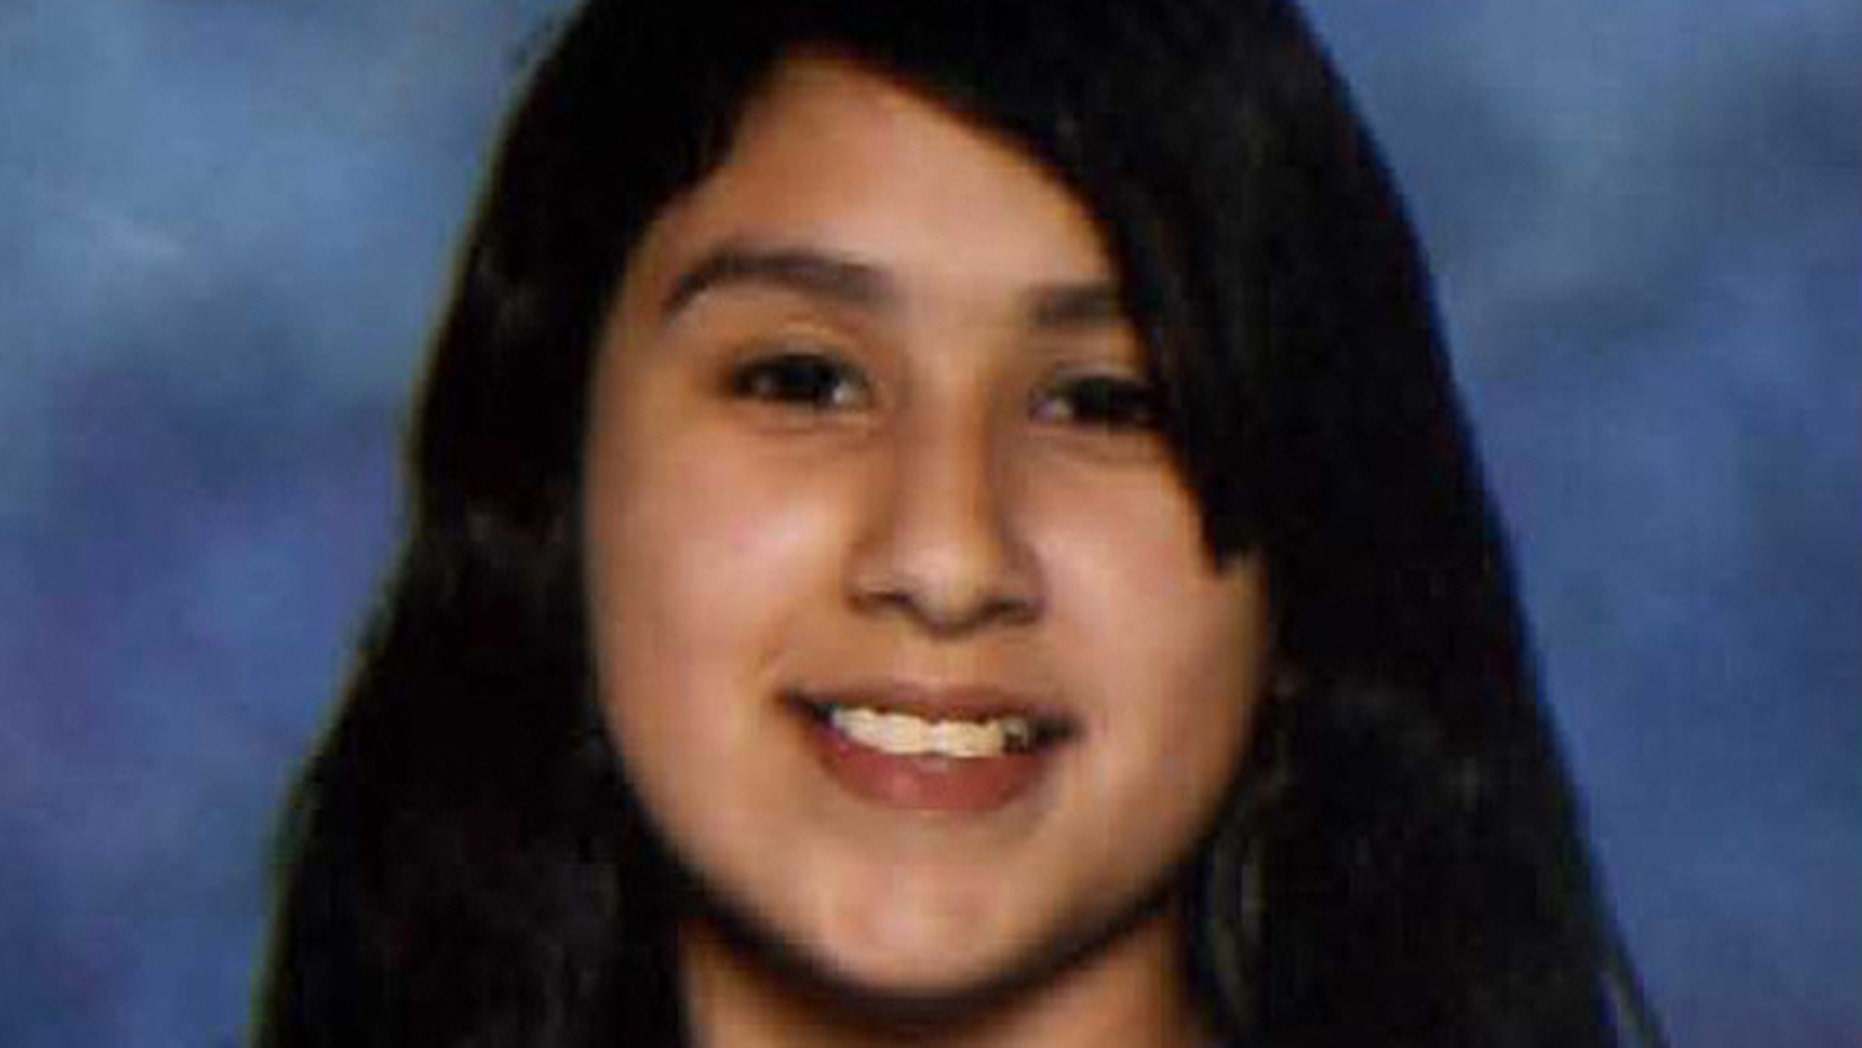 Isabeth Yanez, of Georgia's Fayette County, was reported missing by her parents at 6 a.m. on Dec. 28. Investigators with the Fayette County Sheriff's Office now believe she might have been taken by Simon Quintana Guiterrez to a city near Acapulco. (Fayette County Sheriff's Office)